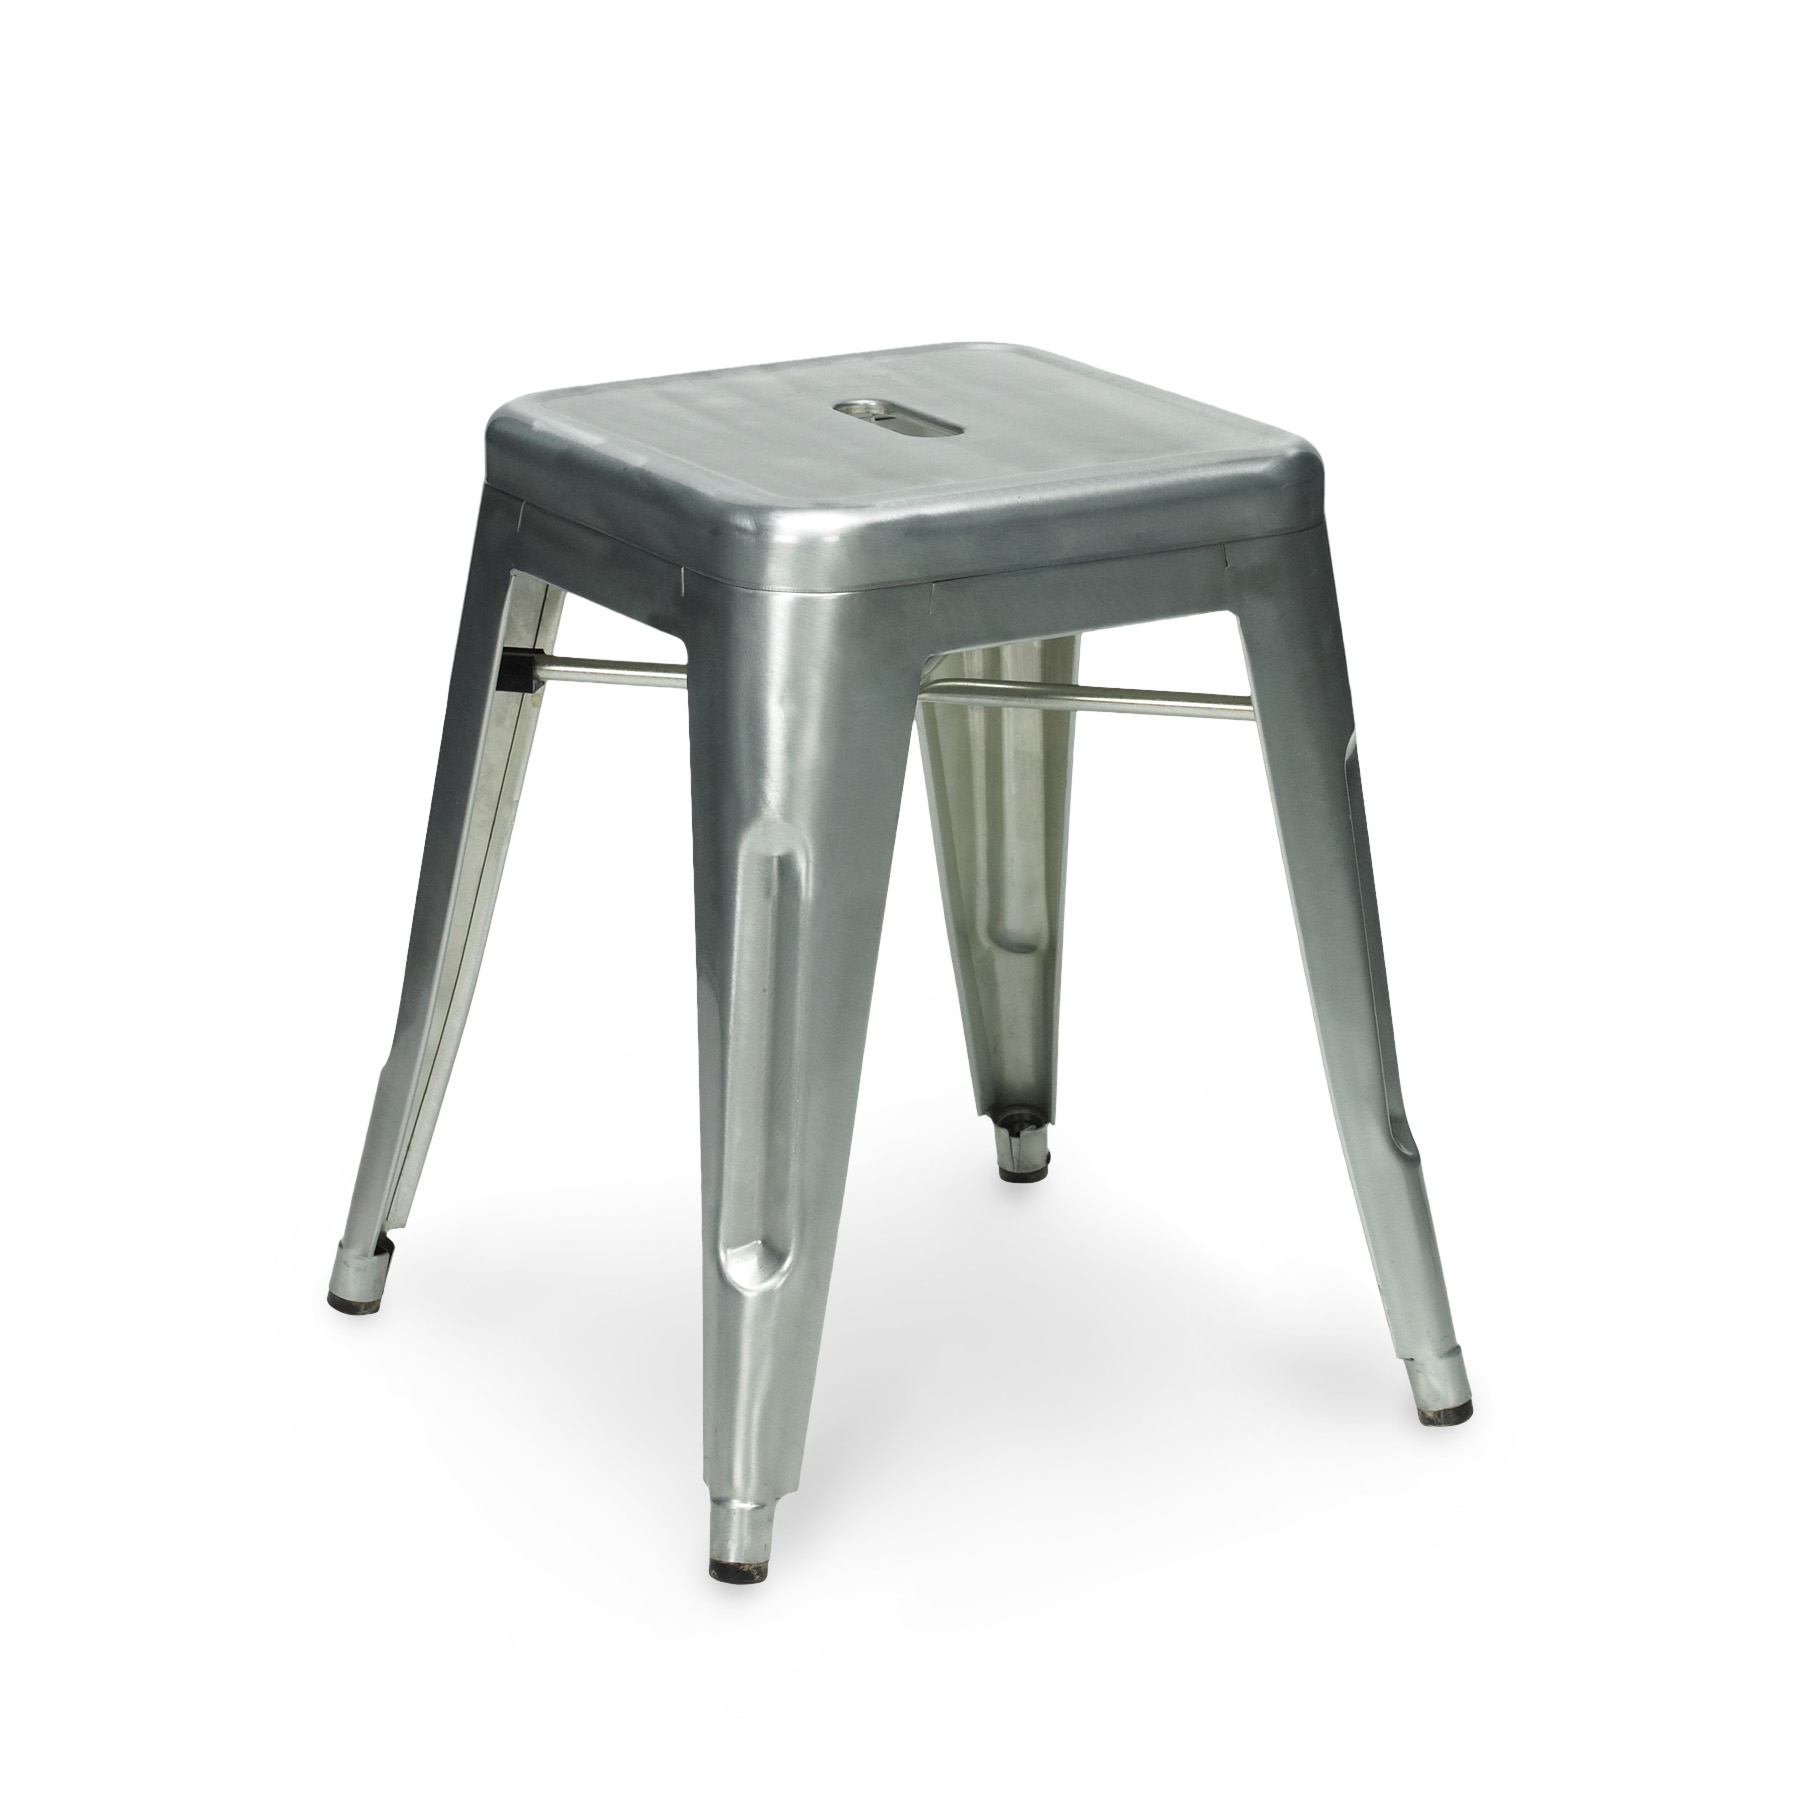 Galvanised Metal Tolix Stool 45cm. Xavier Pauchard 45cm Galvanised Stool.  CULT017_galvanized_frontside